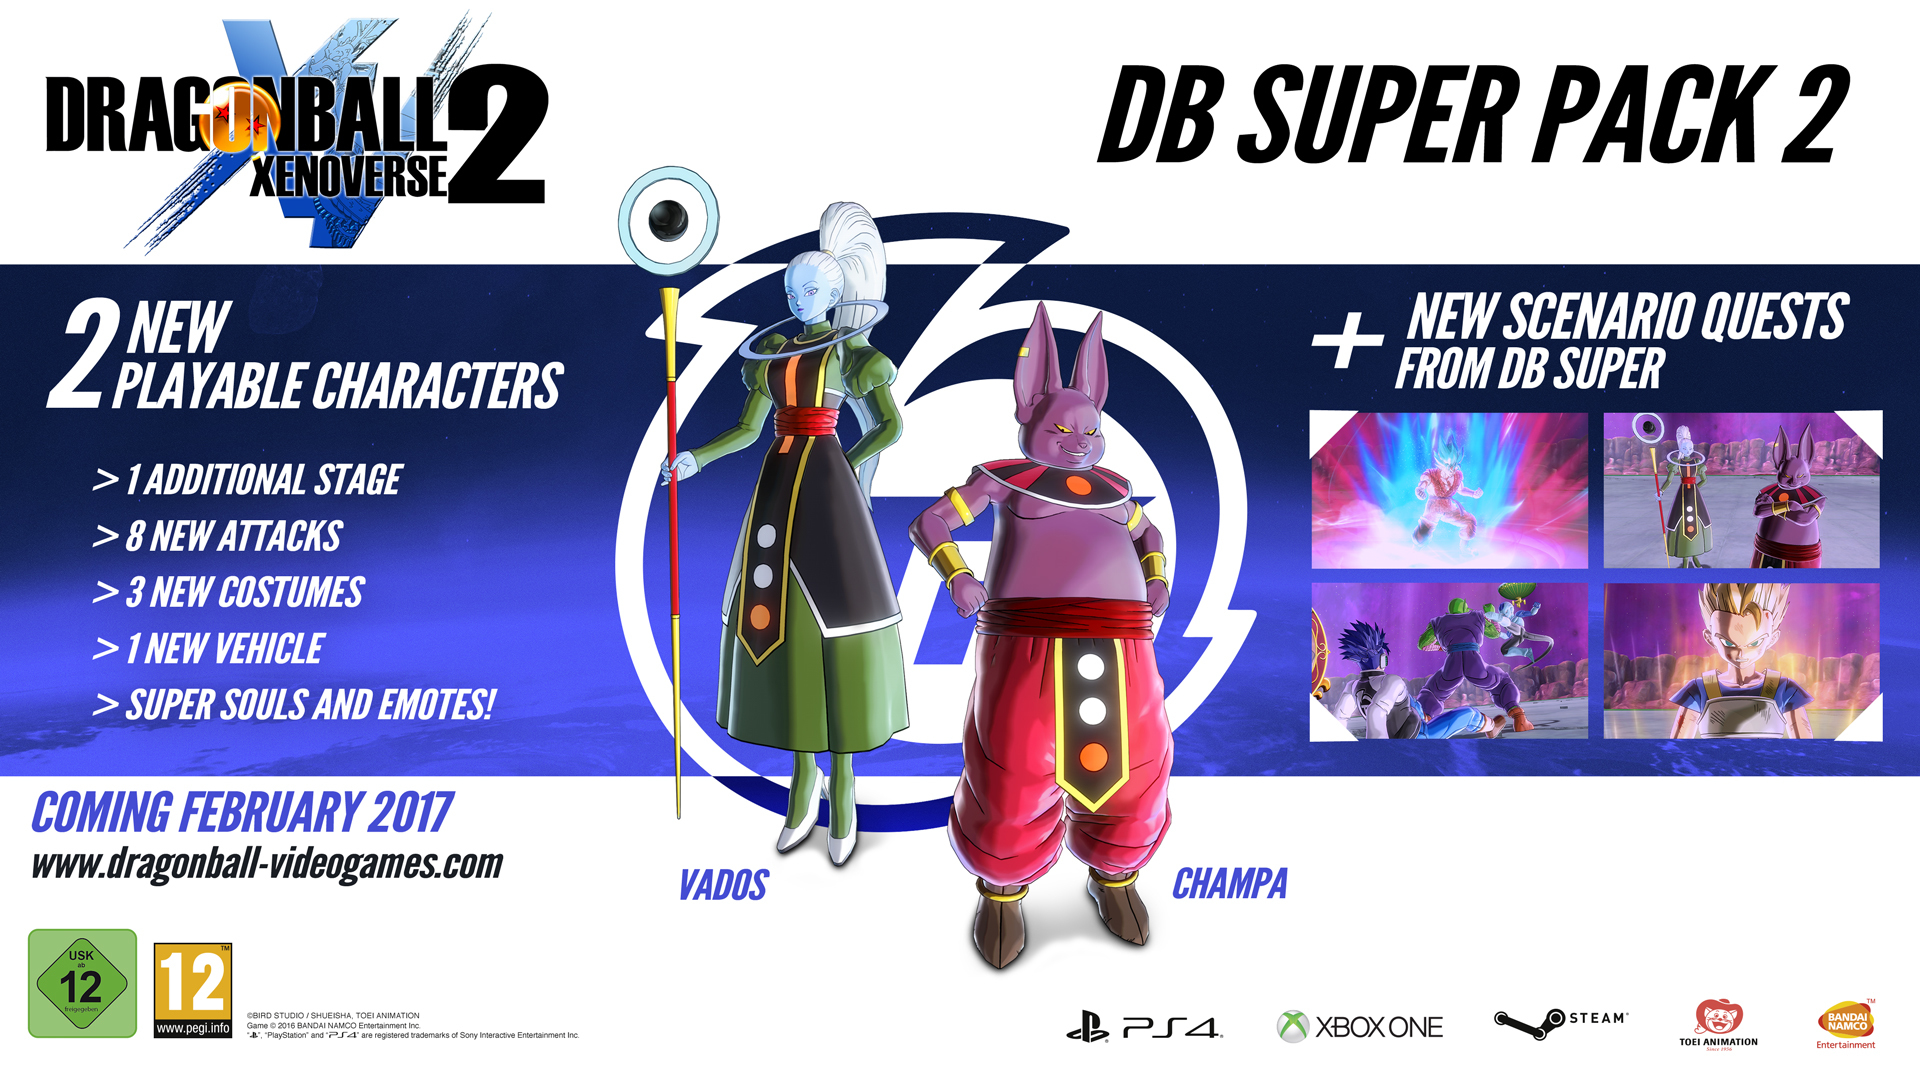 DRAGON BALL XENOVERSE 2 - Extra DLC Pack 3 on Steam